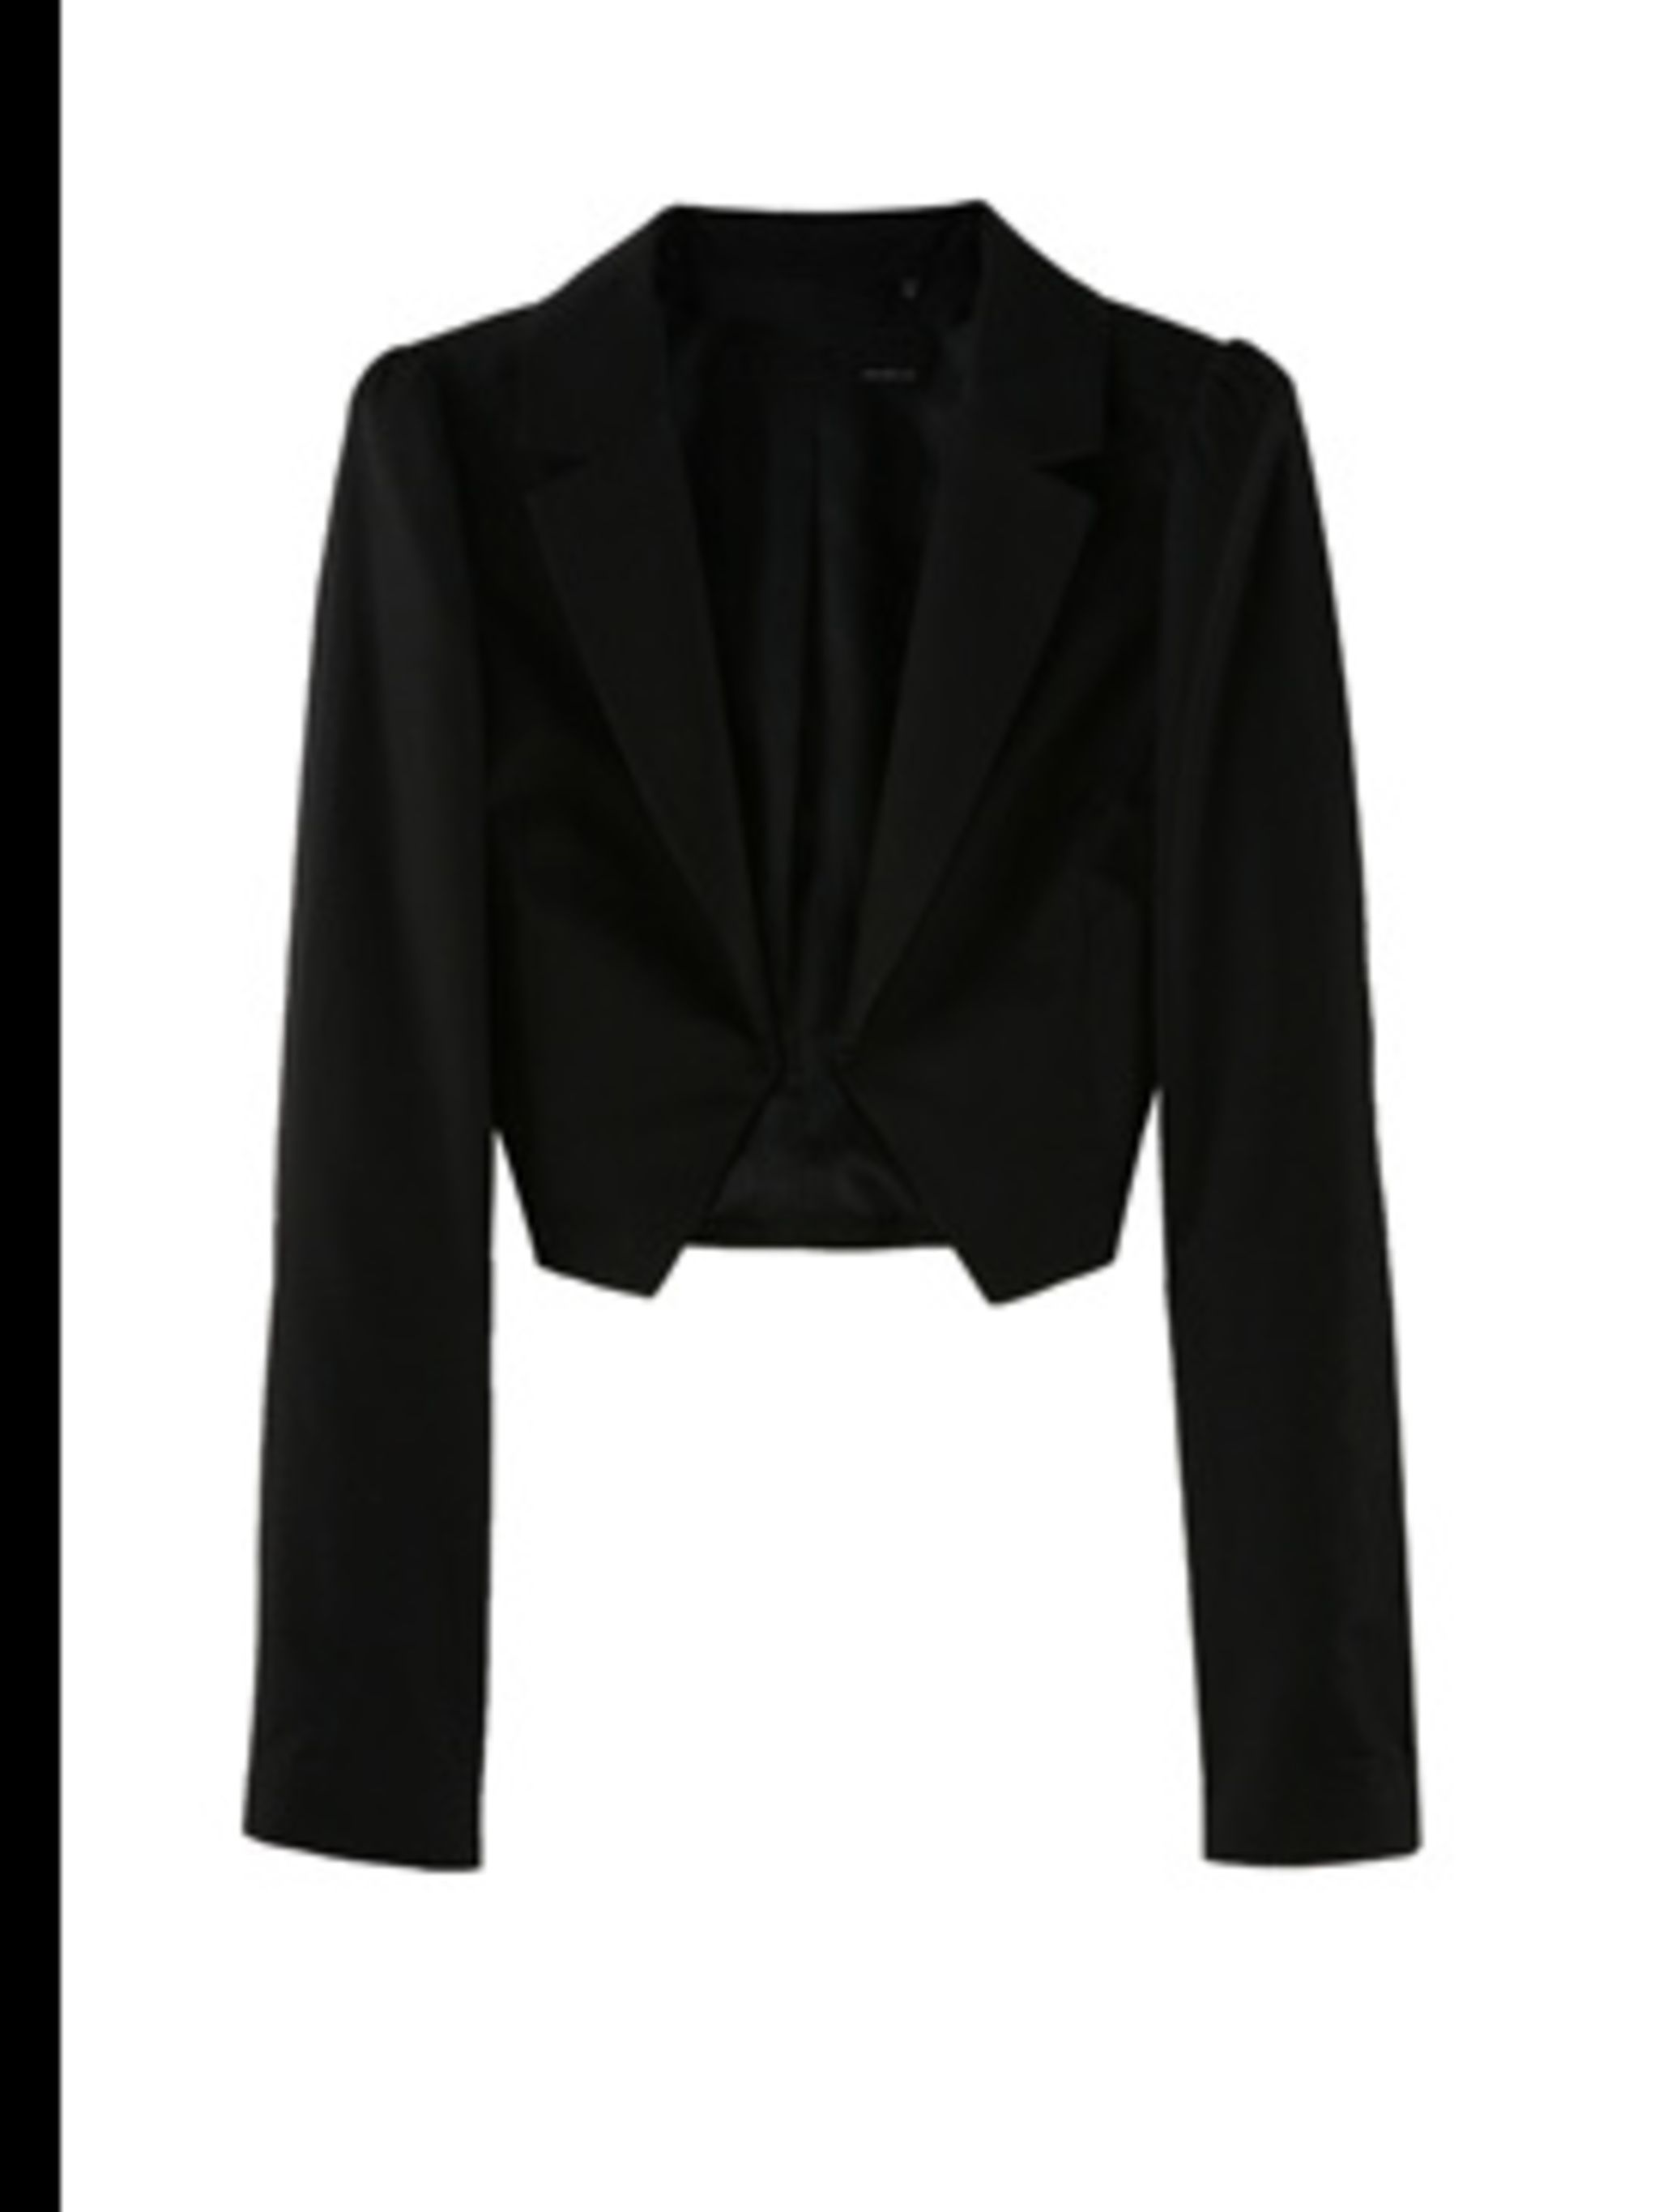 "<p>Cropped tailored jacket, £205, by Armand Basi at <a href=""http://store.drmartens.co.uk/p-3411-darcie.aspx"">My-Wardrobe</a></p>"